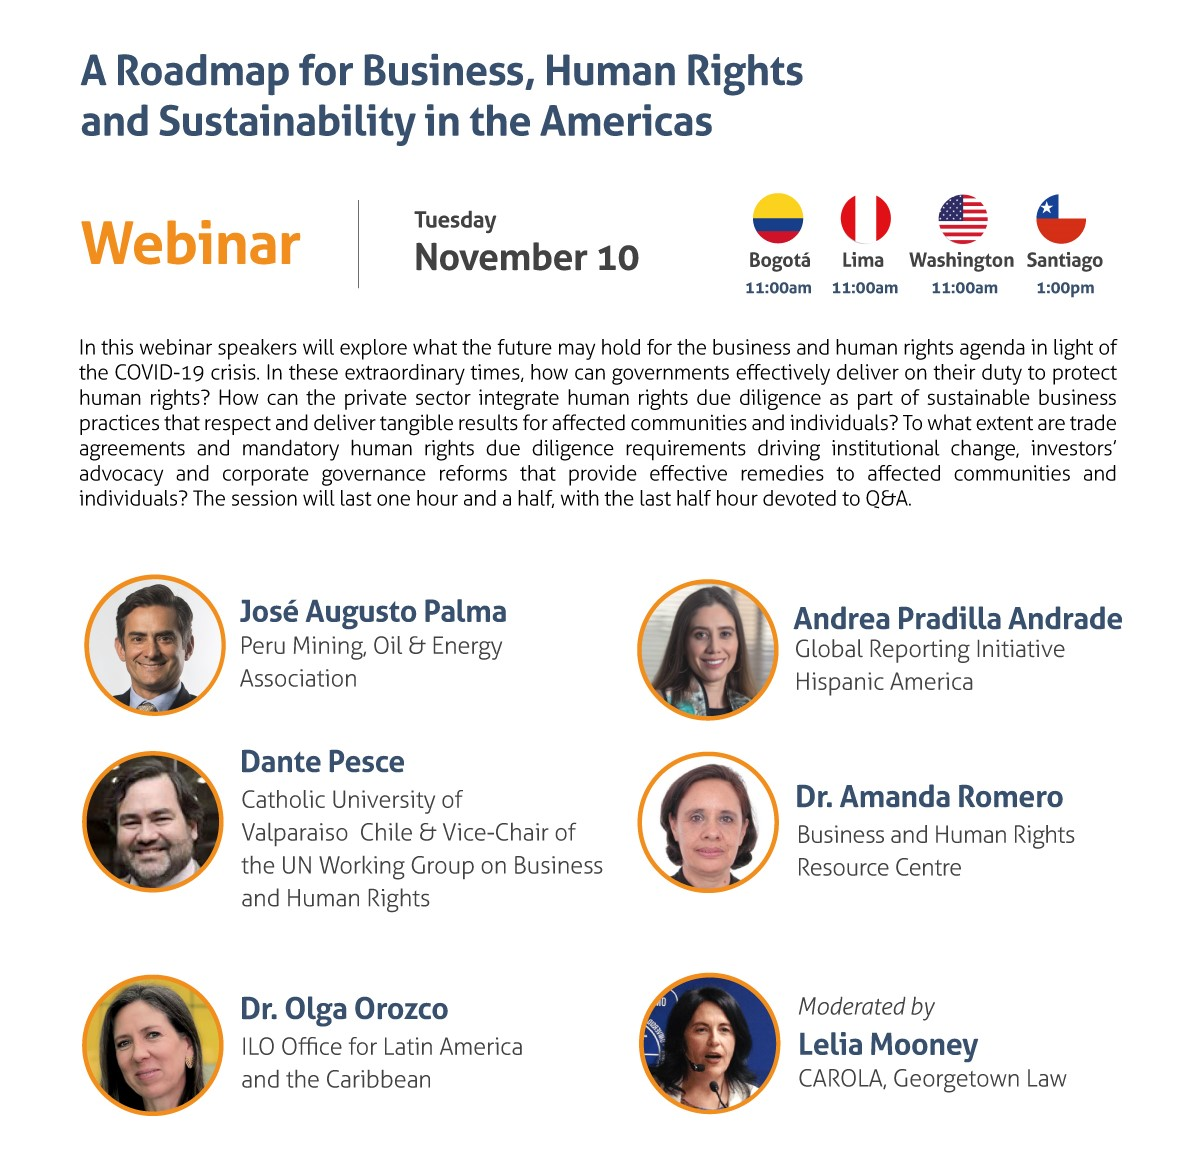 A Roadmap for Business, Human Rights and Sustainability in the Americas Webinar Tuesday, November 10 11:00 am Washington, DC / Bogota / Lima 1:00 pm Santiago de Chile In this webinar speakers will explore what the future may hold for the business and human rights agenda in light of the COVID-19 crisis. In these extraordinary times, how can governments effectively deliver on their duty to protect human rights? How can the private sector integrate human rights due diligence as part of sustainable business practices that respect and deliver tangible results for affected communities and individuals? To what extent are trade agreements and mandatory human rights due diligence requirements driving institutional change, investors' advocacy and corporate governance reforms that provide effective remedies to affected communities and individuals? The session will last one hour and a half, with the last half hour devoted to Q&A. - José Augusto Palma, Peru Mining, Oil & Energy Association - Dante Pesce, Catholic University of Valparaiso Chile & Vice-Chair of the UN Working Group on Business and Human Rights - Andrea Pradilla Andrade, Global Reporting Initiative - Amanda Romero, Business and Human Rights Resource Centre - Olga Orozco, ILO Office for Latin America and the Caribbean Moderated by: Lelia Mooney, CAROLA, Georgetown Law